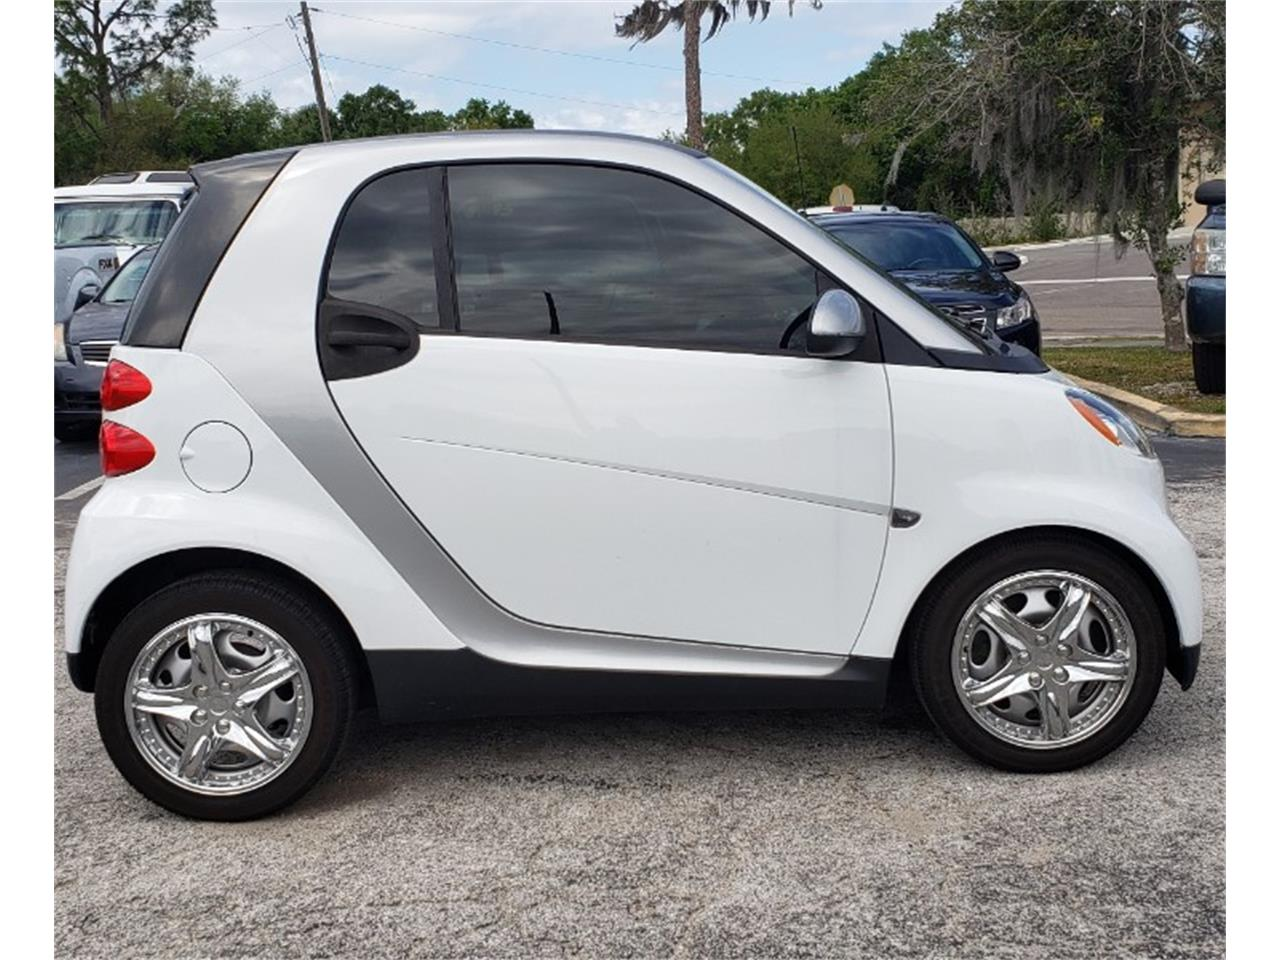 Large Picture of 2012 Smart Fortwo located in Florida - $6,999.00 - PQD0